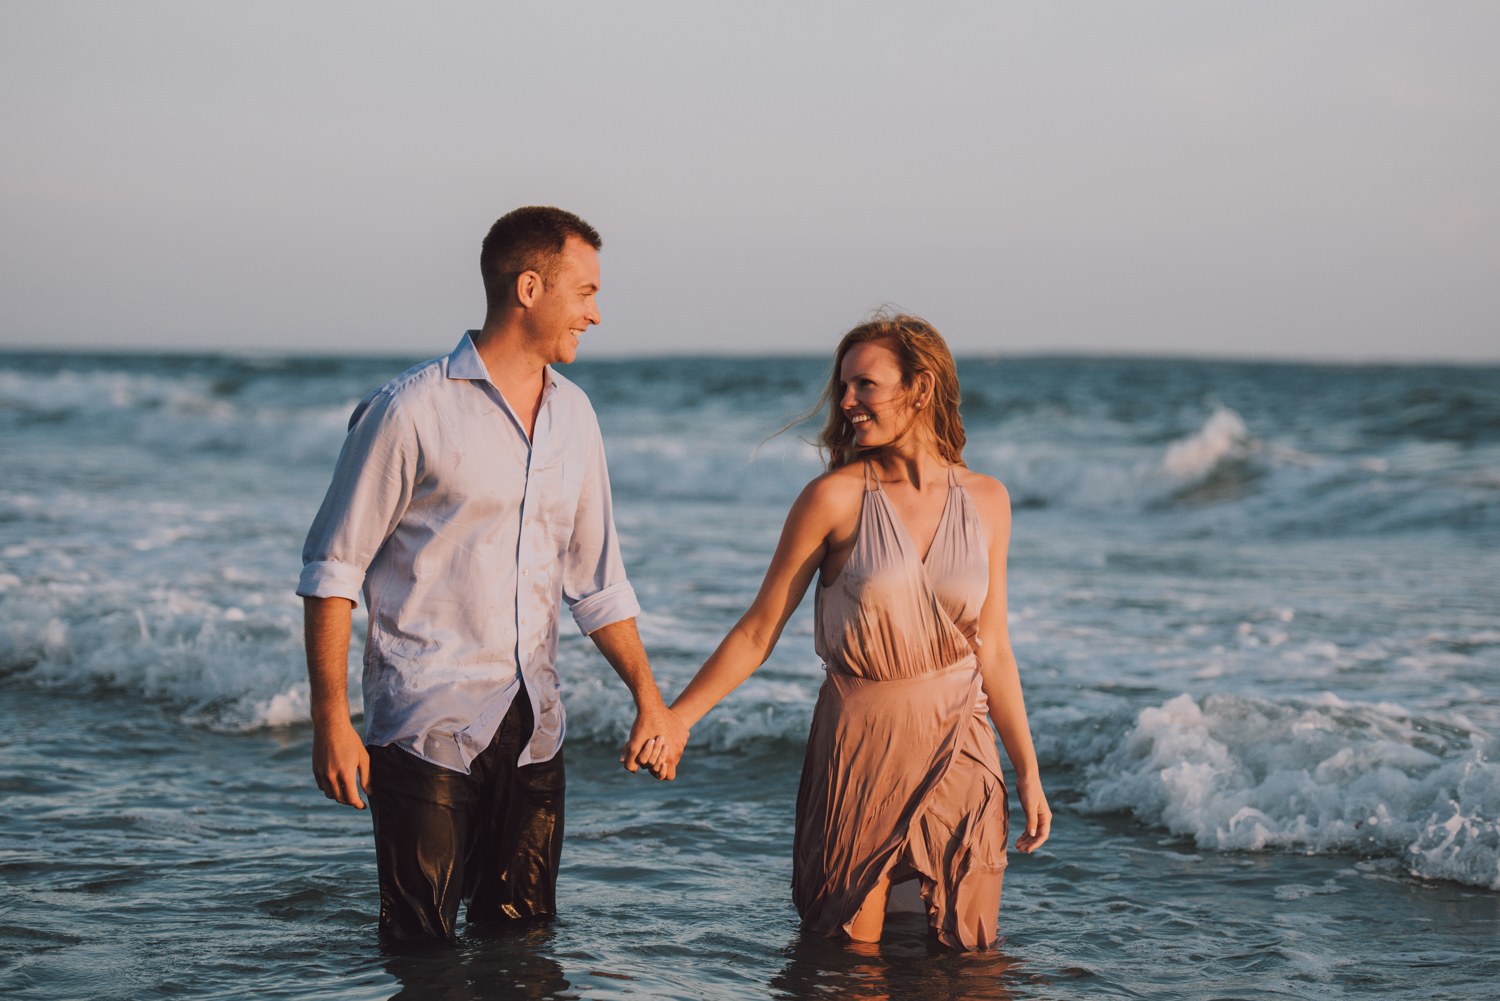 engagement_session_marthas_vineyard_DSC_4723.jpg